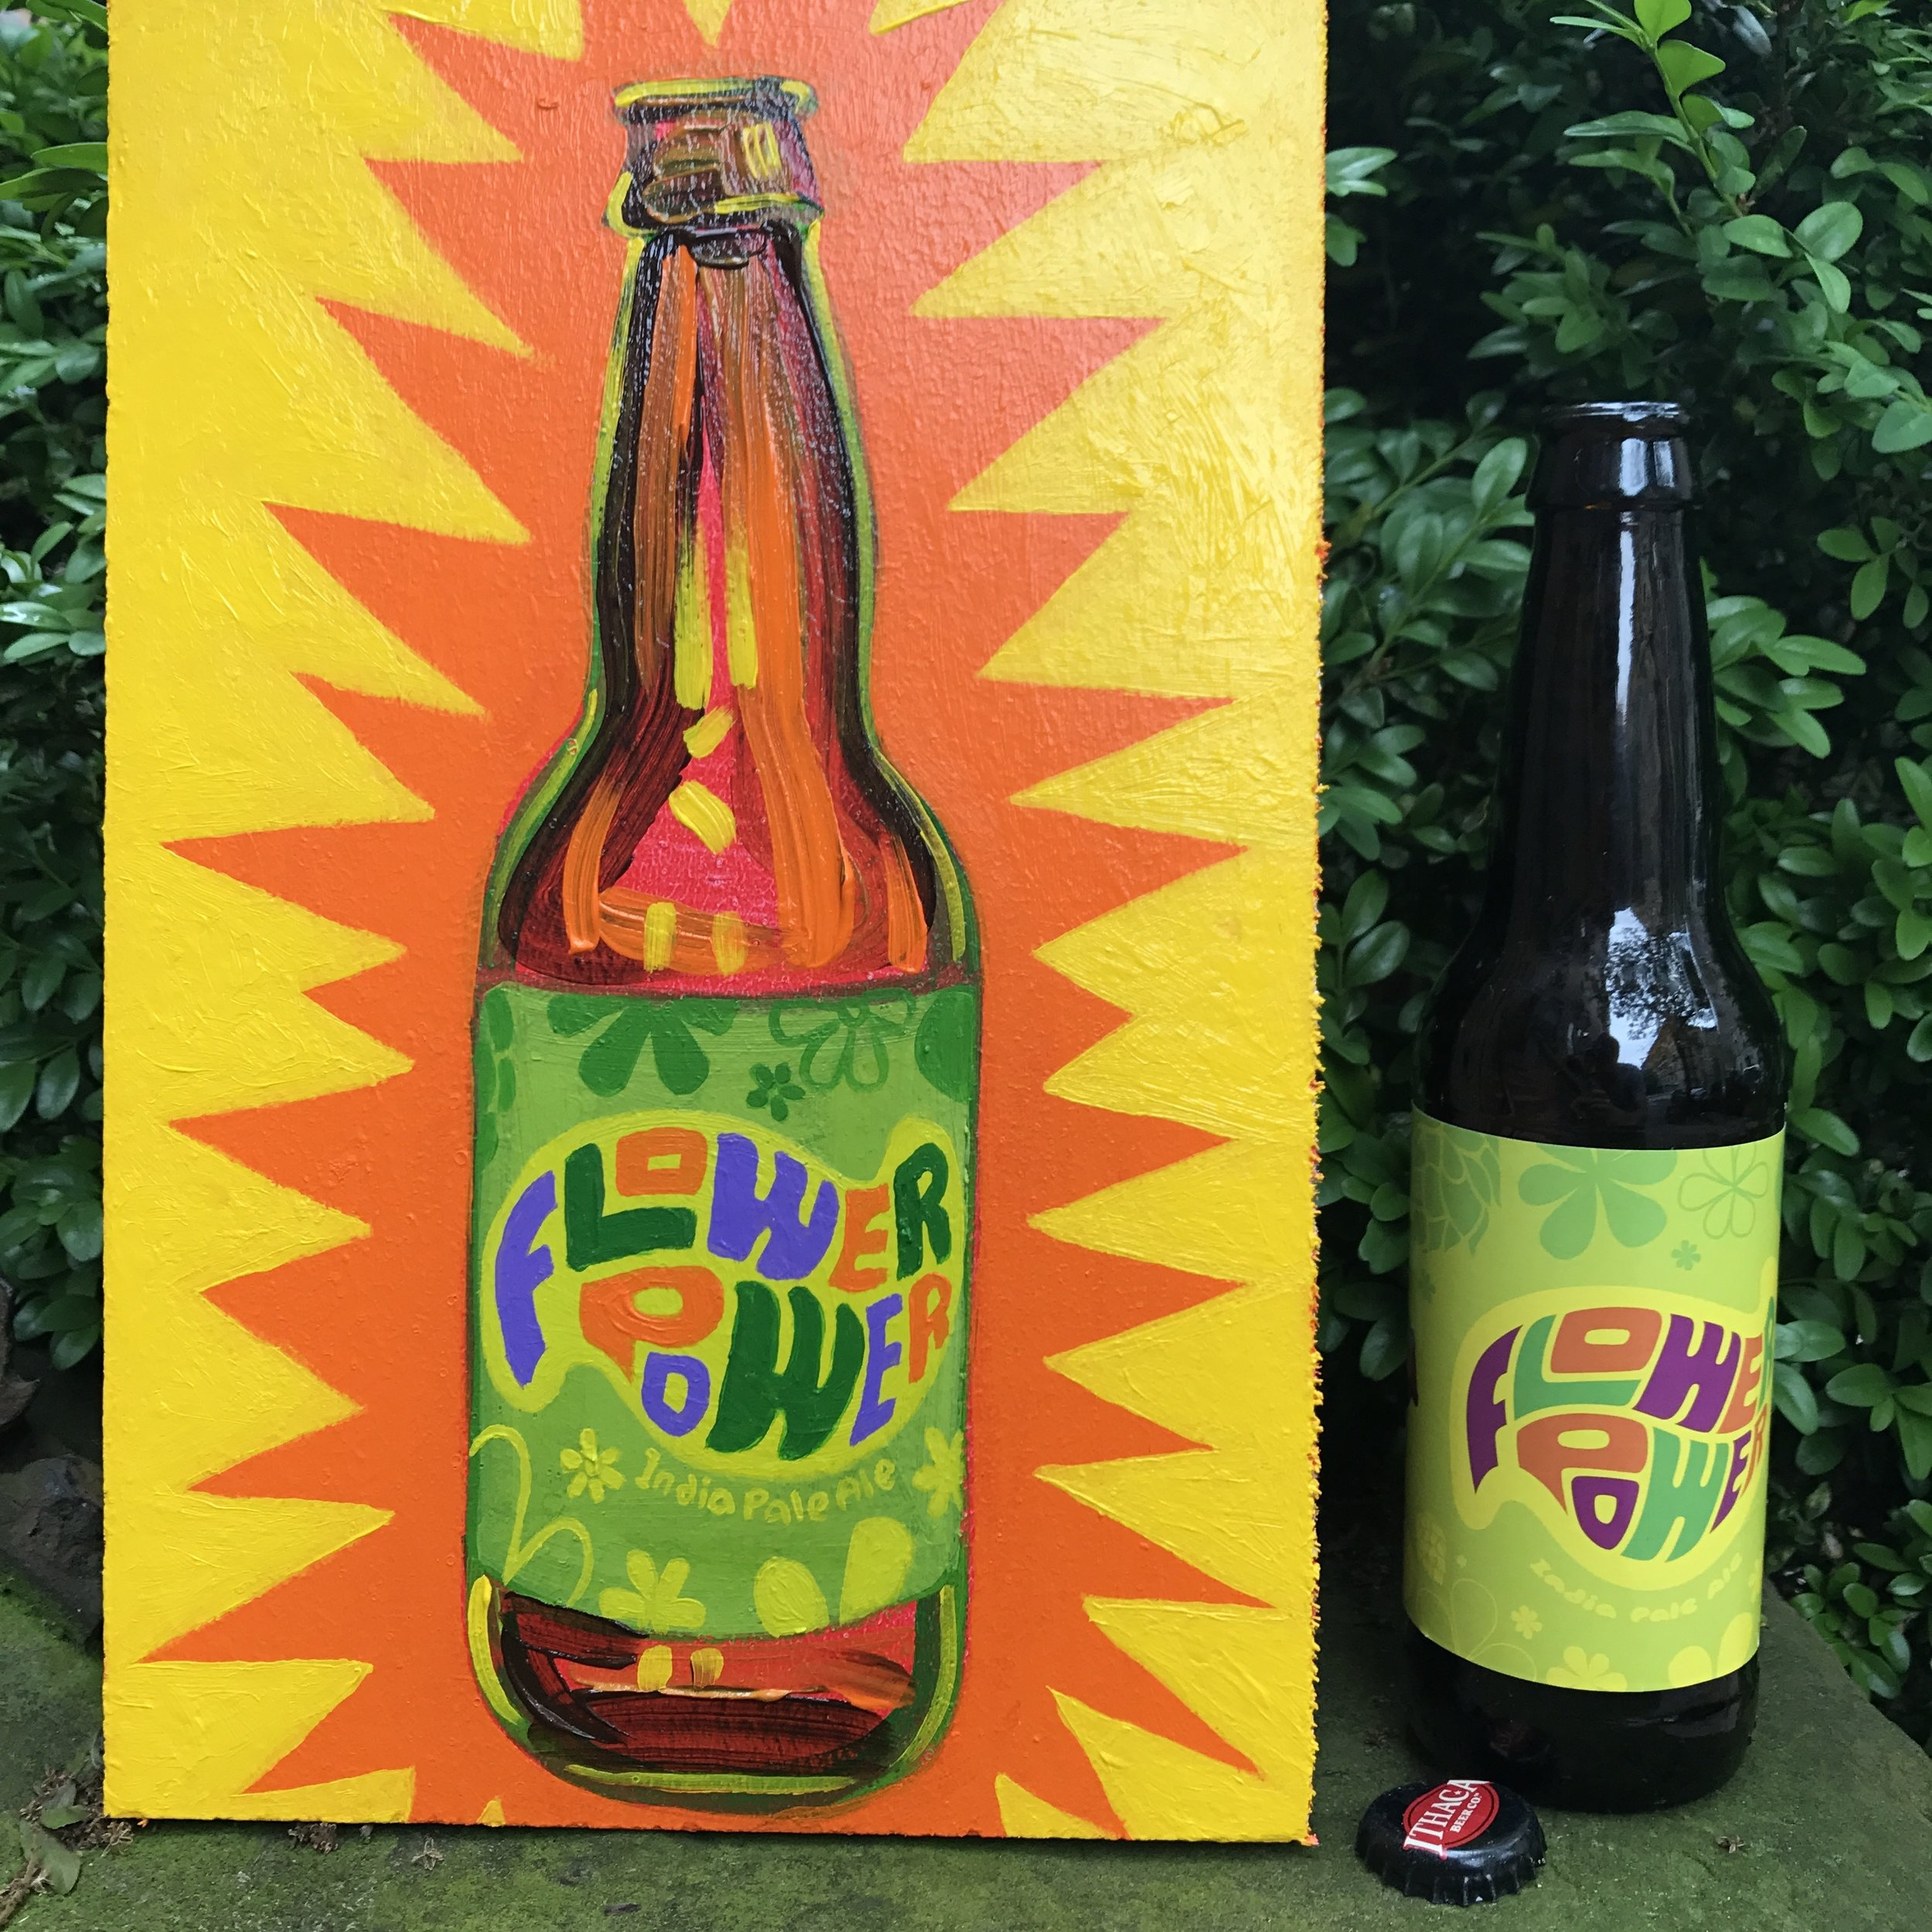 77 Flower Power India Pale Ale (USA)